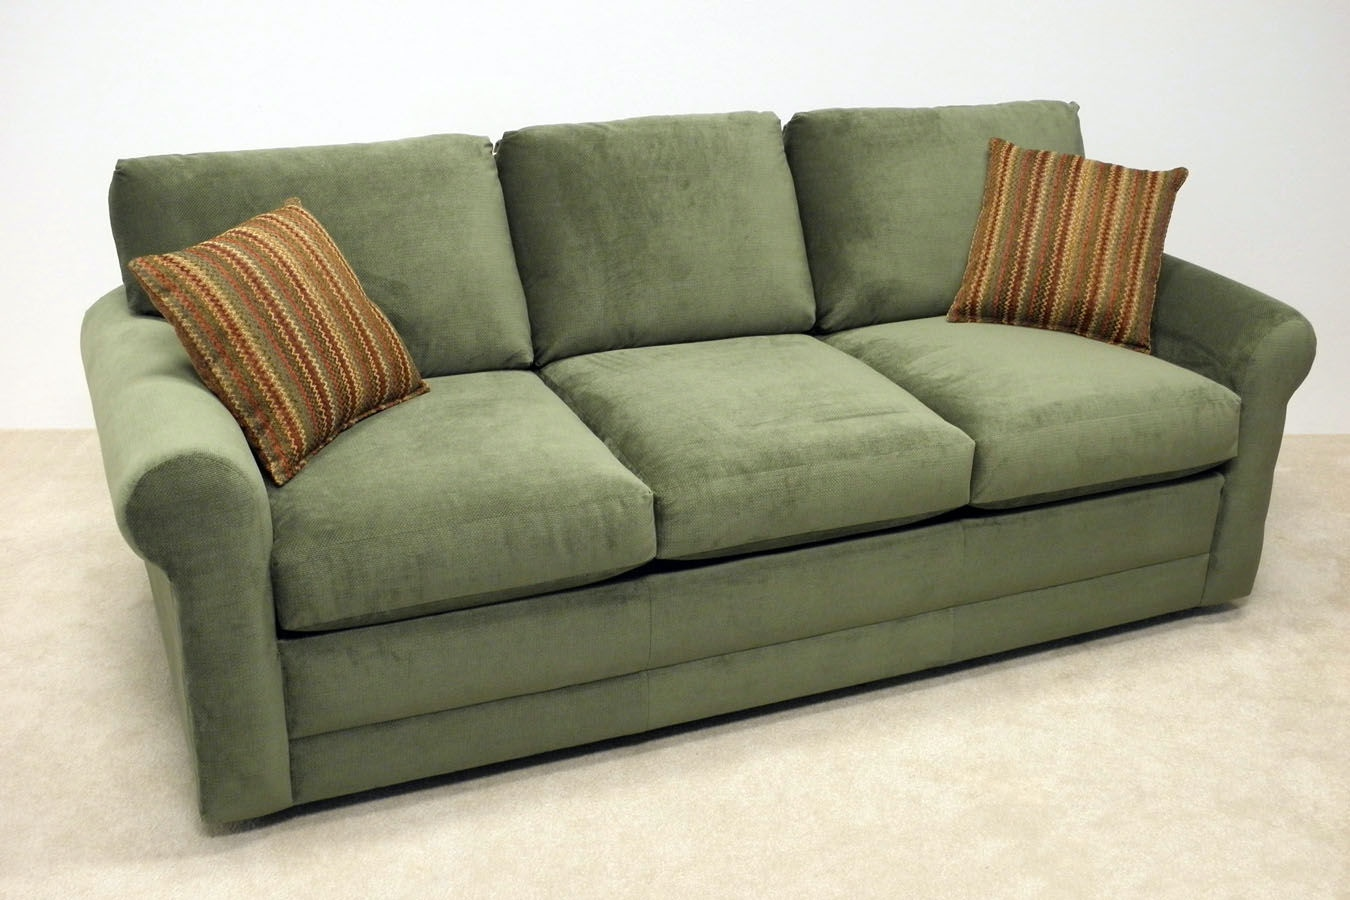 lacrosse living room no sag sofa 368-60